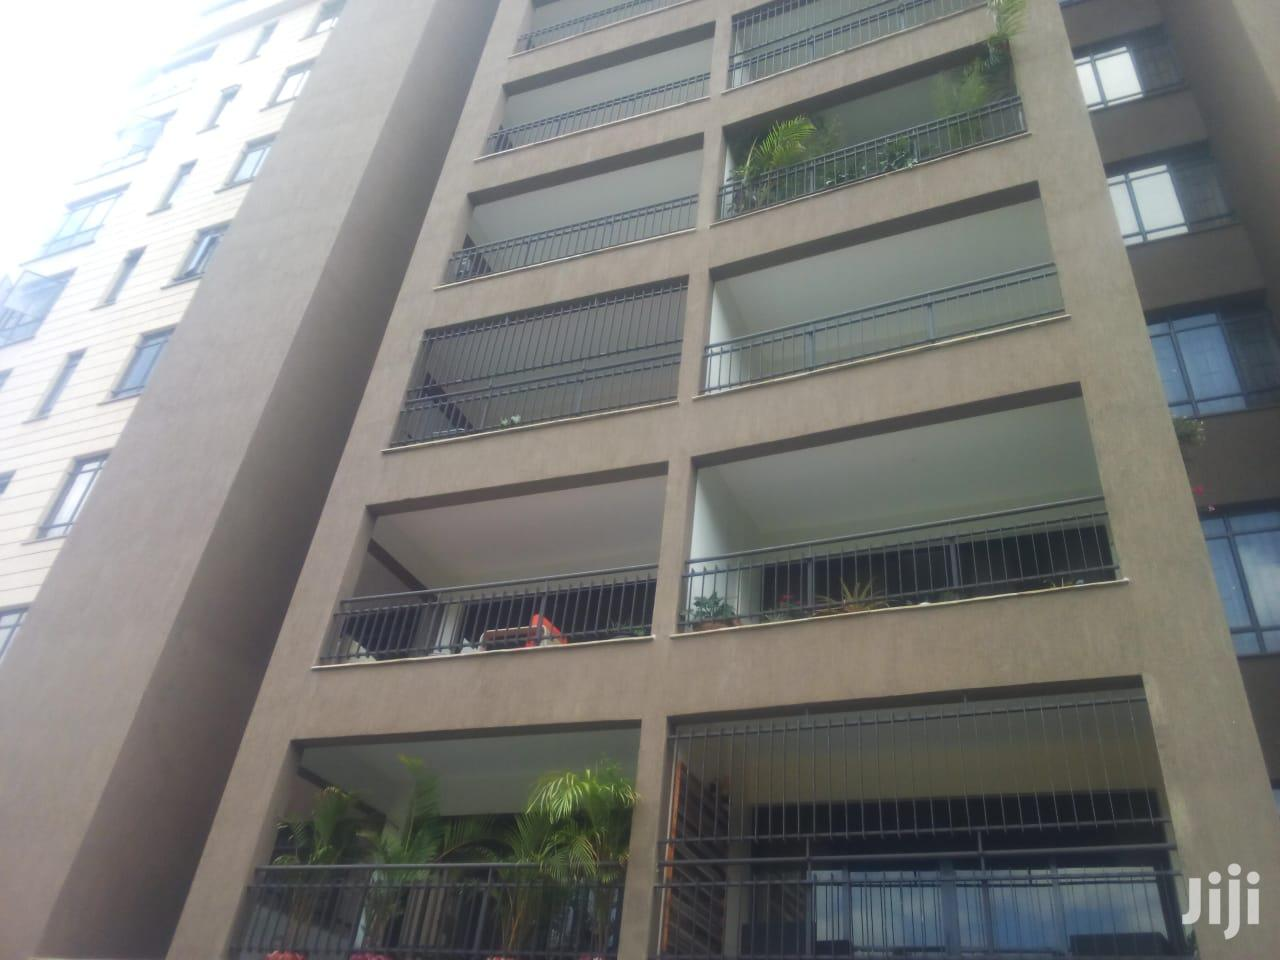 3 Bedrooms And Dsq Penthouse For Sale In Kileleshwa.